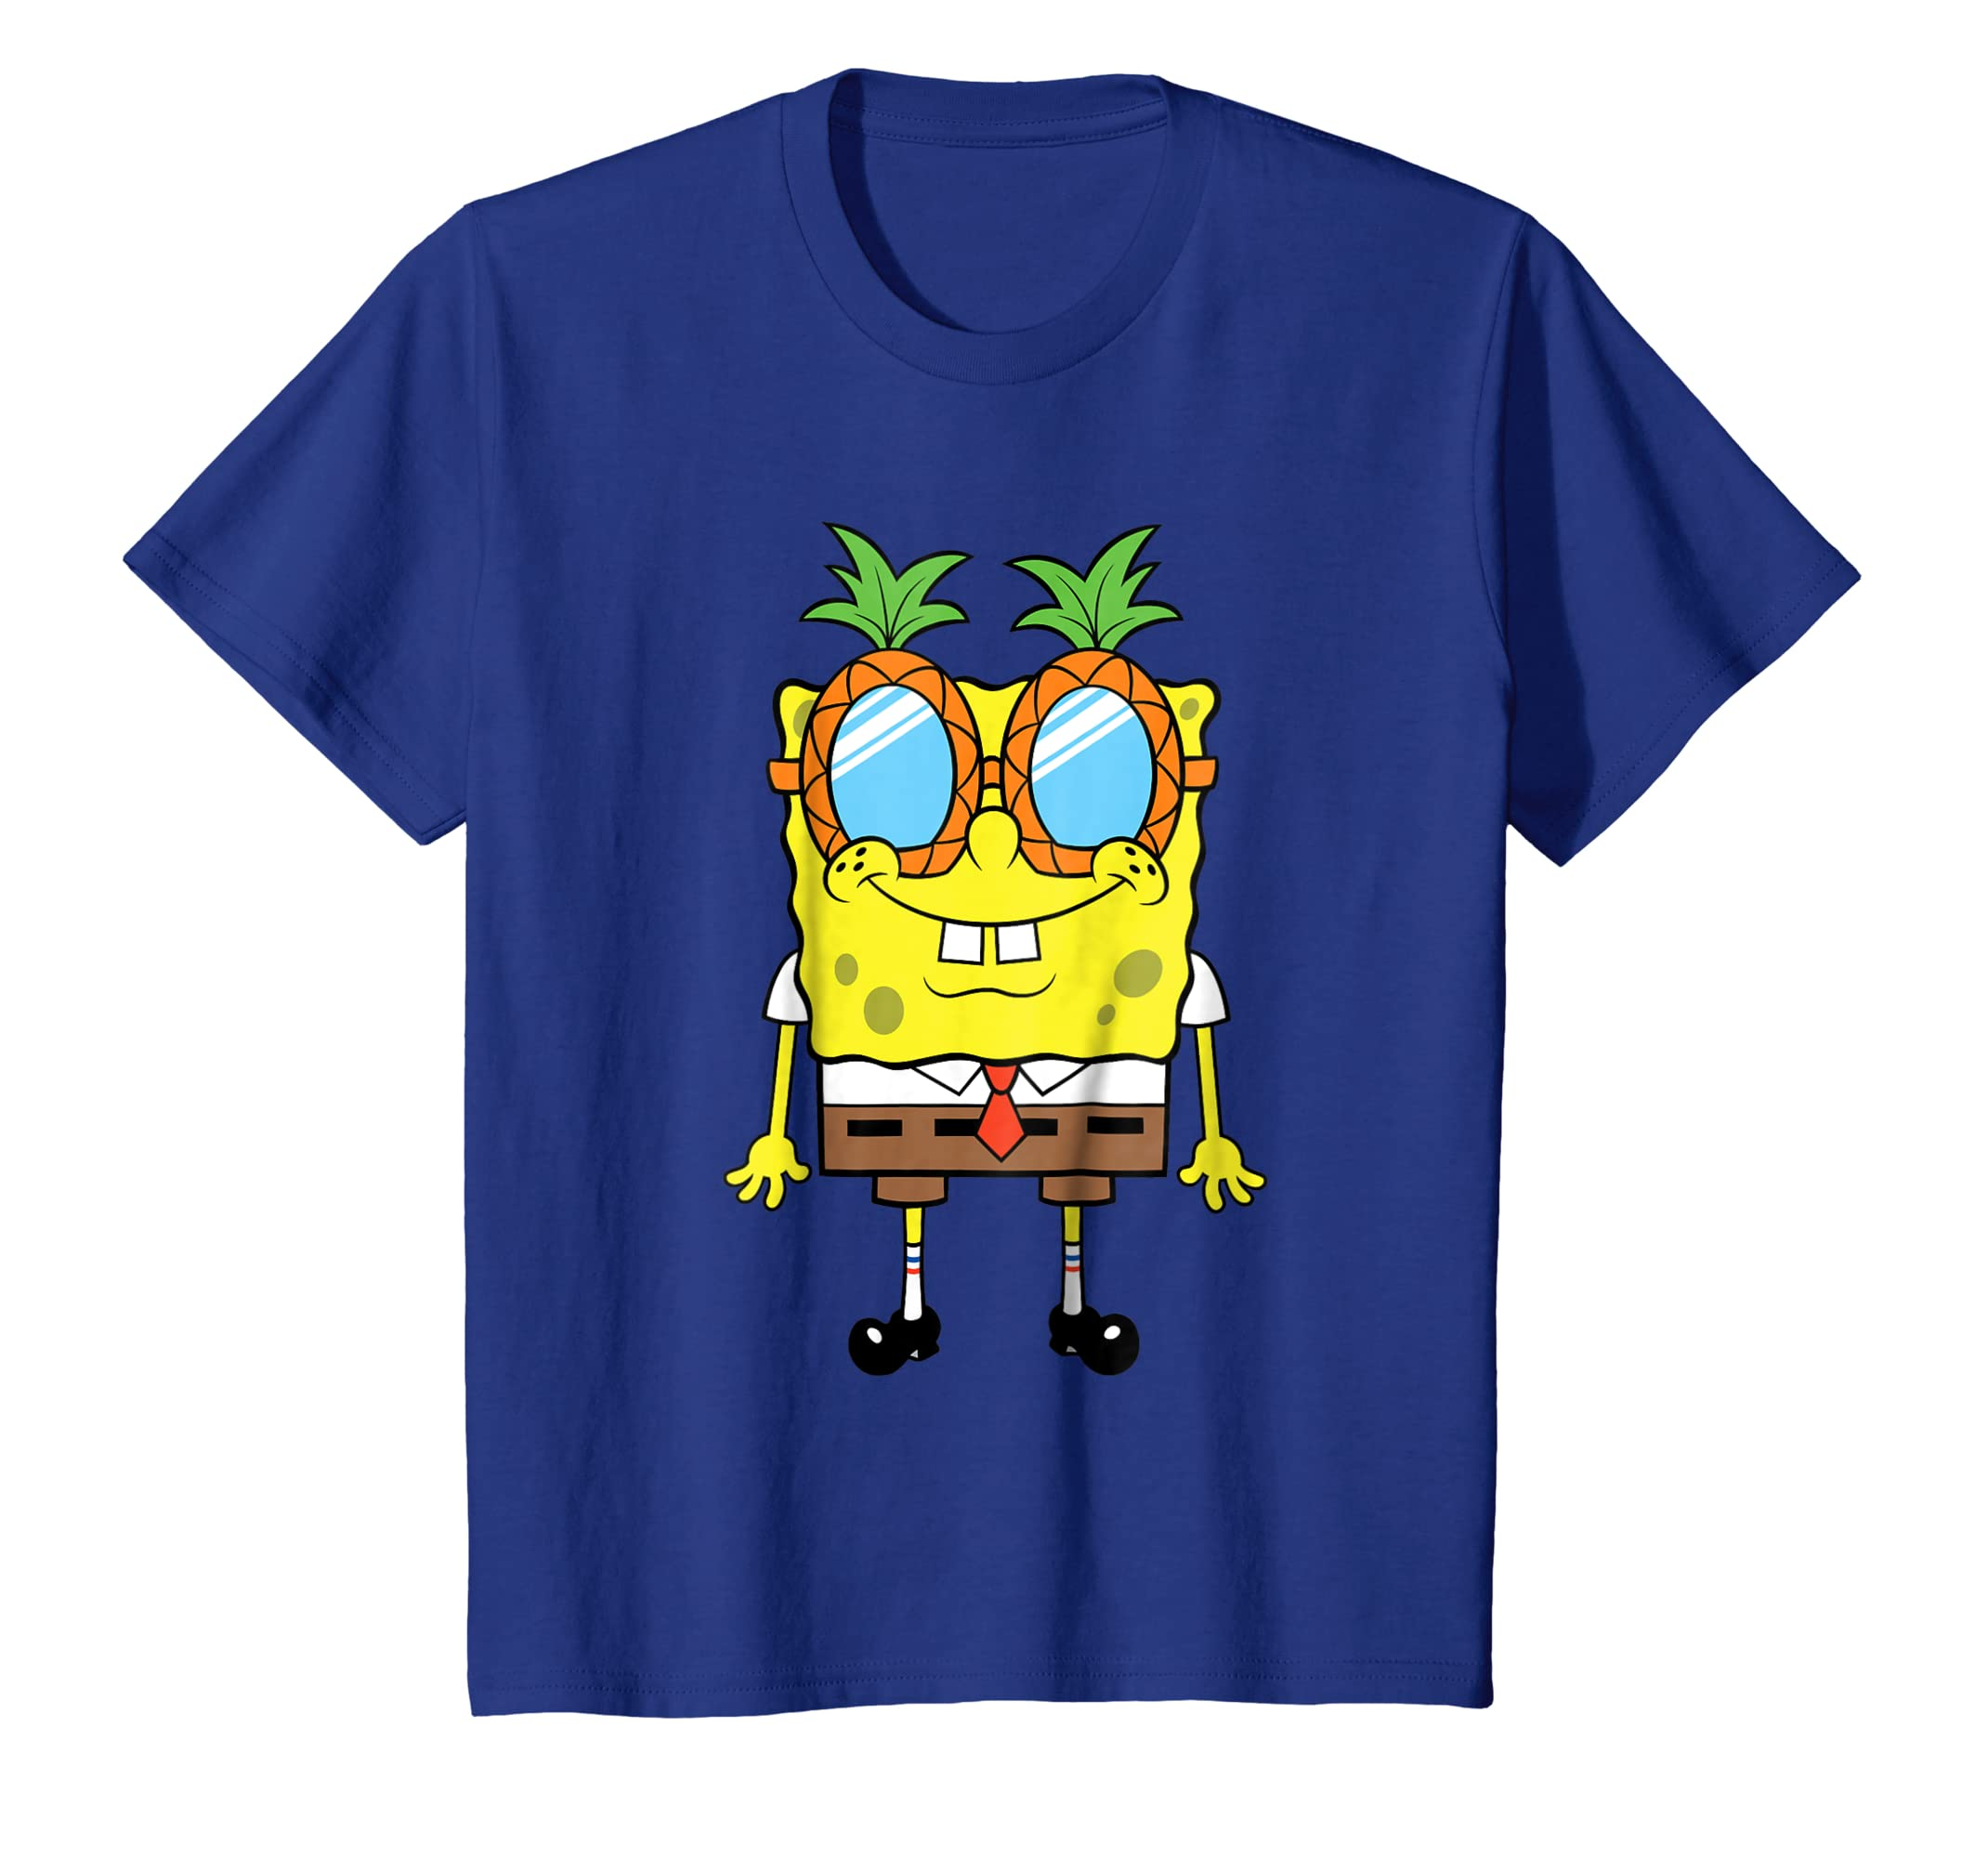 0bf736a93da6 Nickelodeon spongebob squarepants pineapple glasses shirt clothing png  2140x2000 Spongebob squarepants with glasses